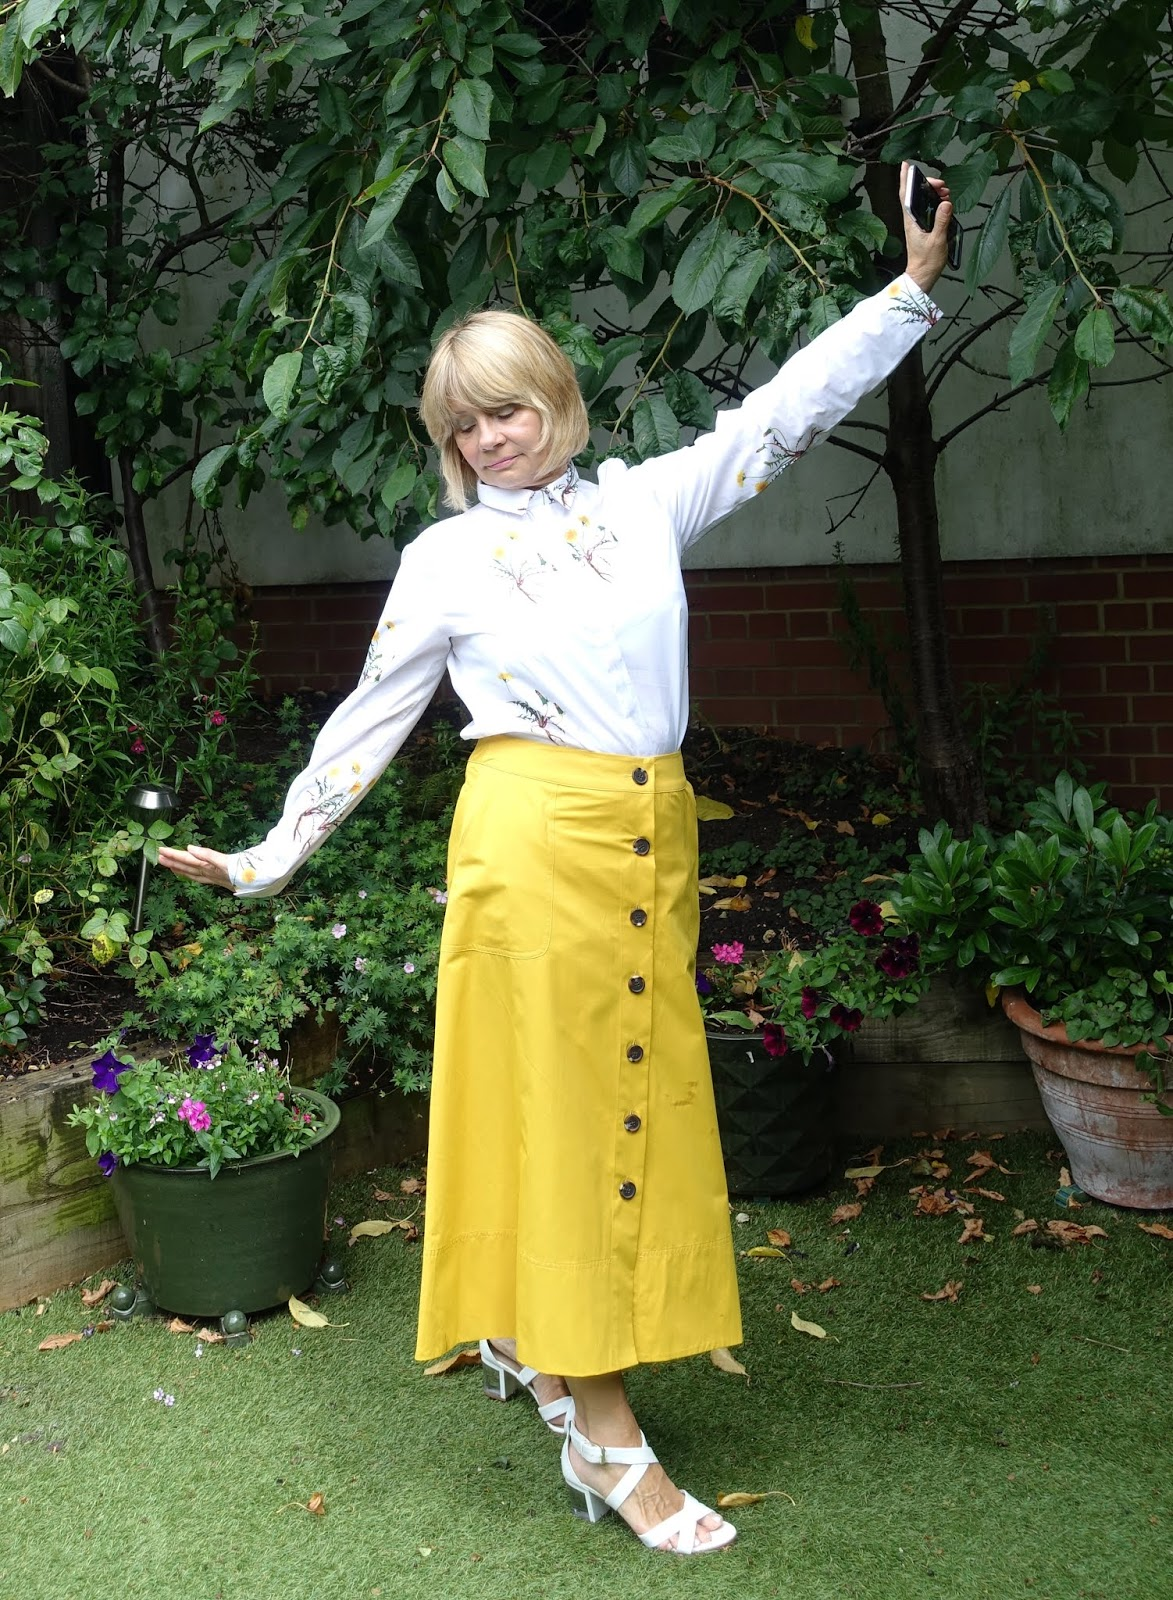 Yellow Midi with Statement Patterned Shirt